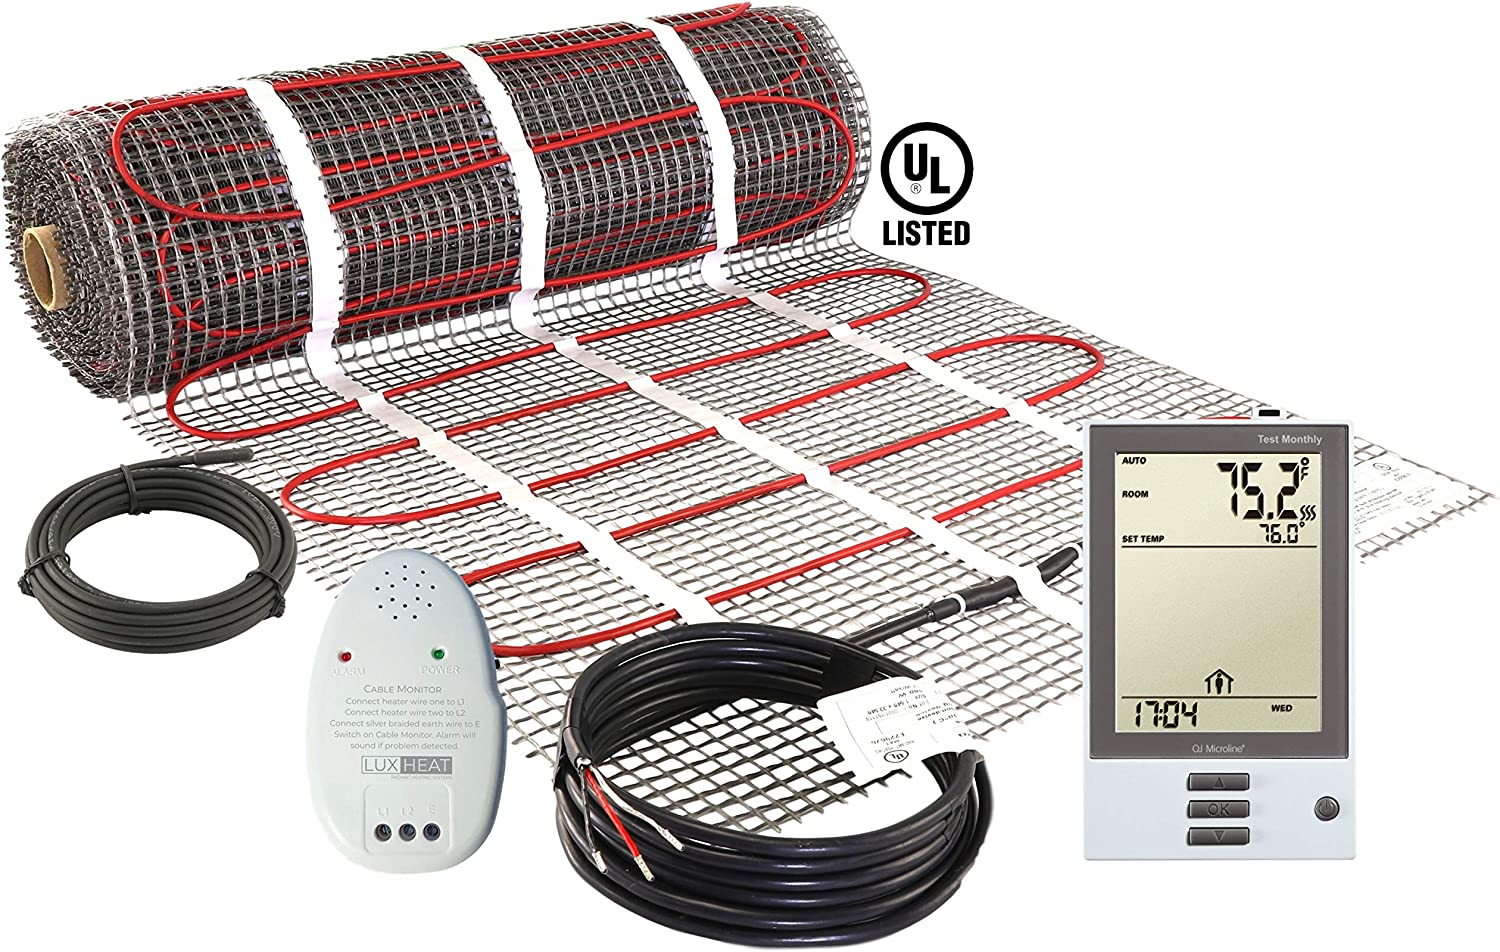 LuxHeat 10 Sqft Mat Kit (120v) Electric Radiant Floor Heating System for Under tile, Stone & Laminate. Includes Self-Adhesive Heat Mat, OJ Microline Programmable Thermostat with GFCI & Cable Monitor